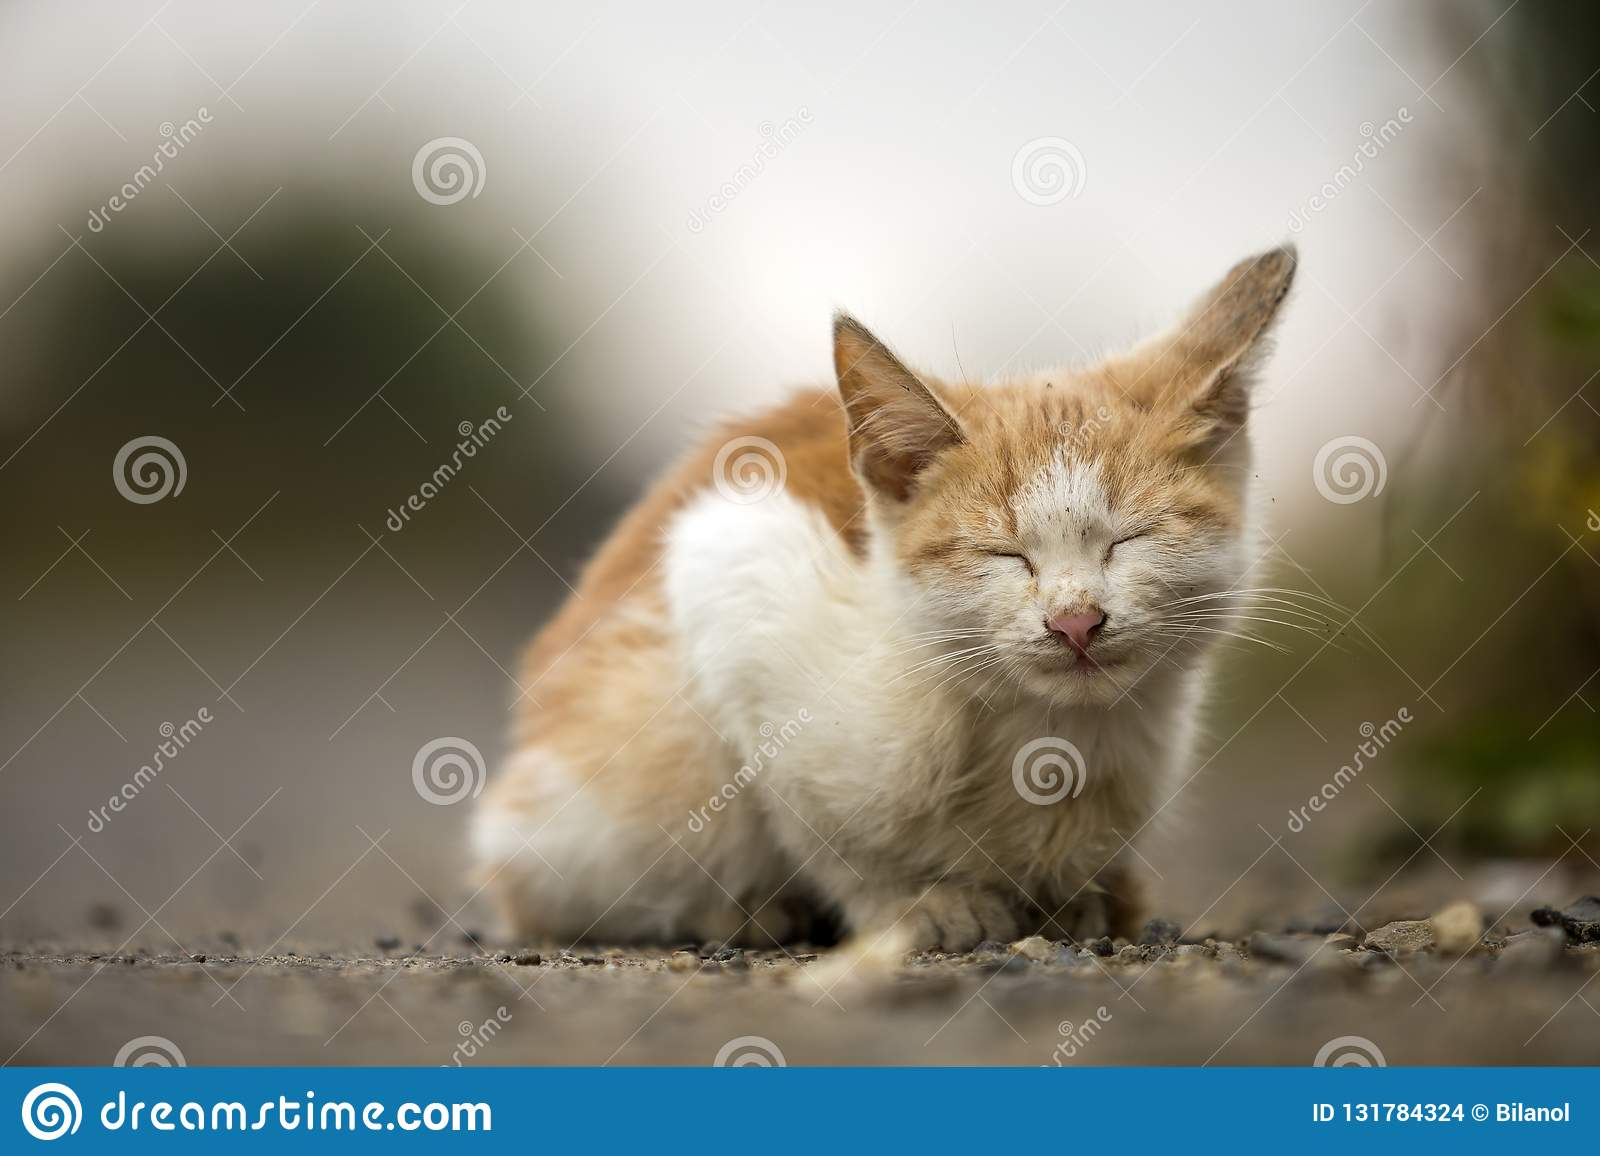 Close-up portrait of funny cute adorable ginger small white young cat kitten with closed eyes sitting dreaming sleeping outdoors